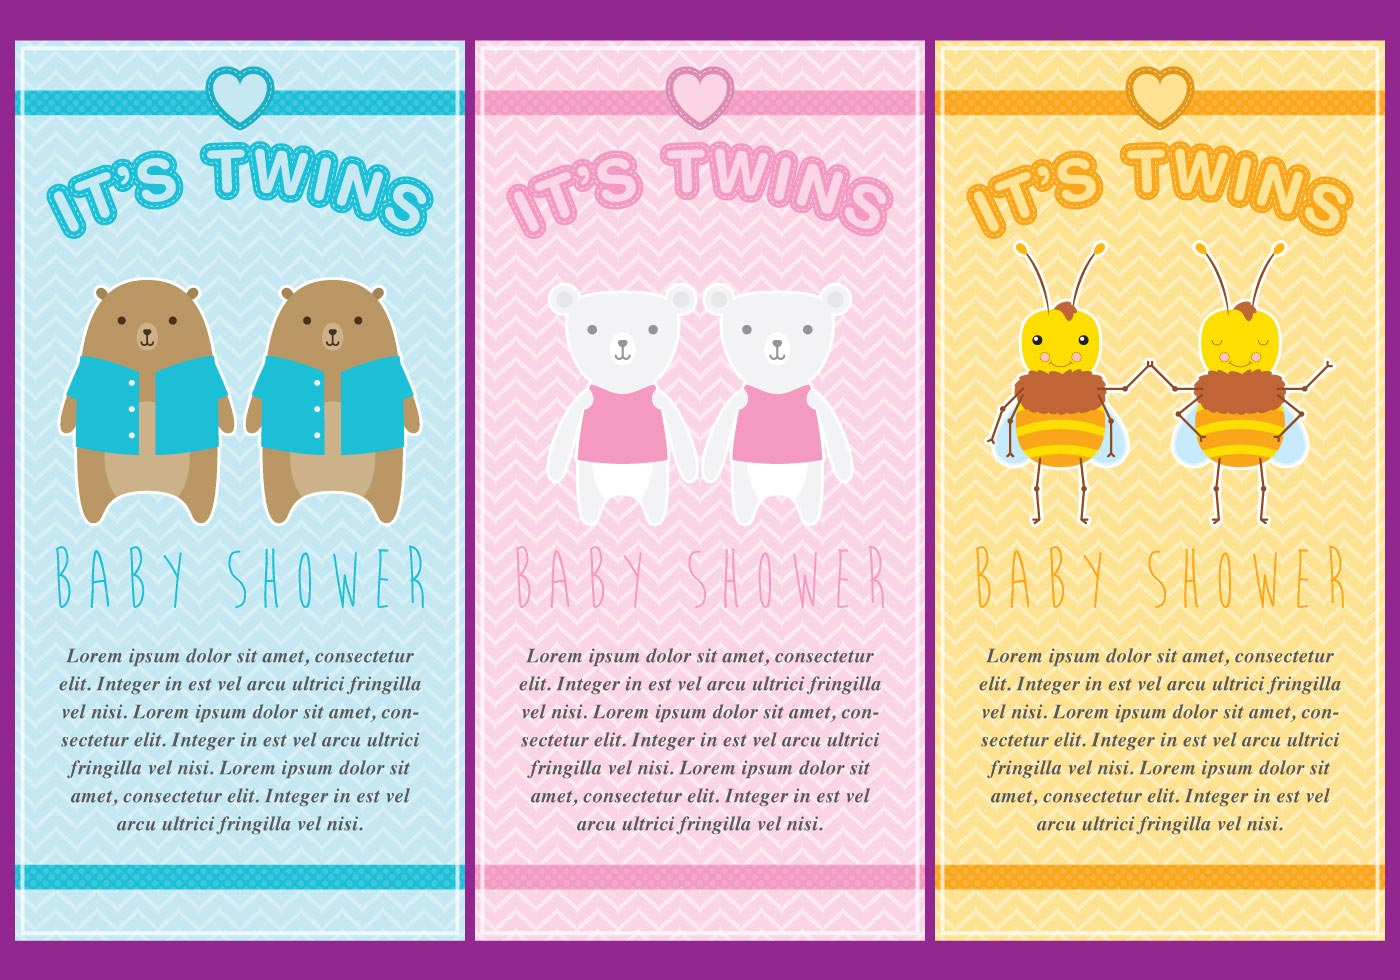 Twin Babies Invitations - Download Free Vector Art, Stock ...